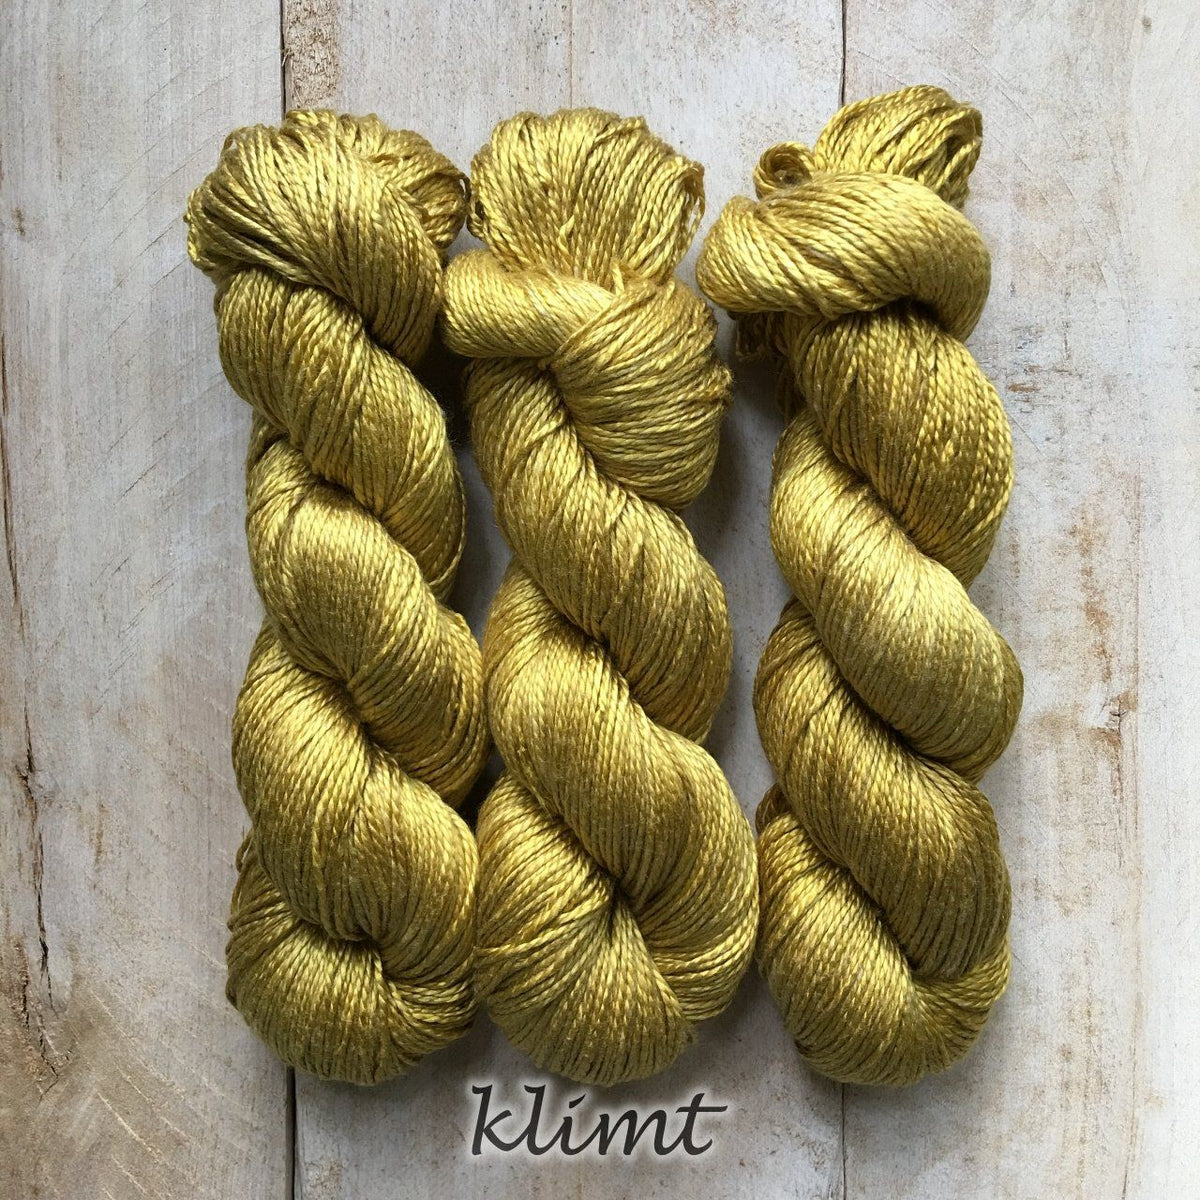 KLIMT by Louise Robert Design | ALGUA MARINA hand-dyed semi-solid yarn